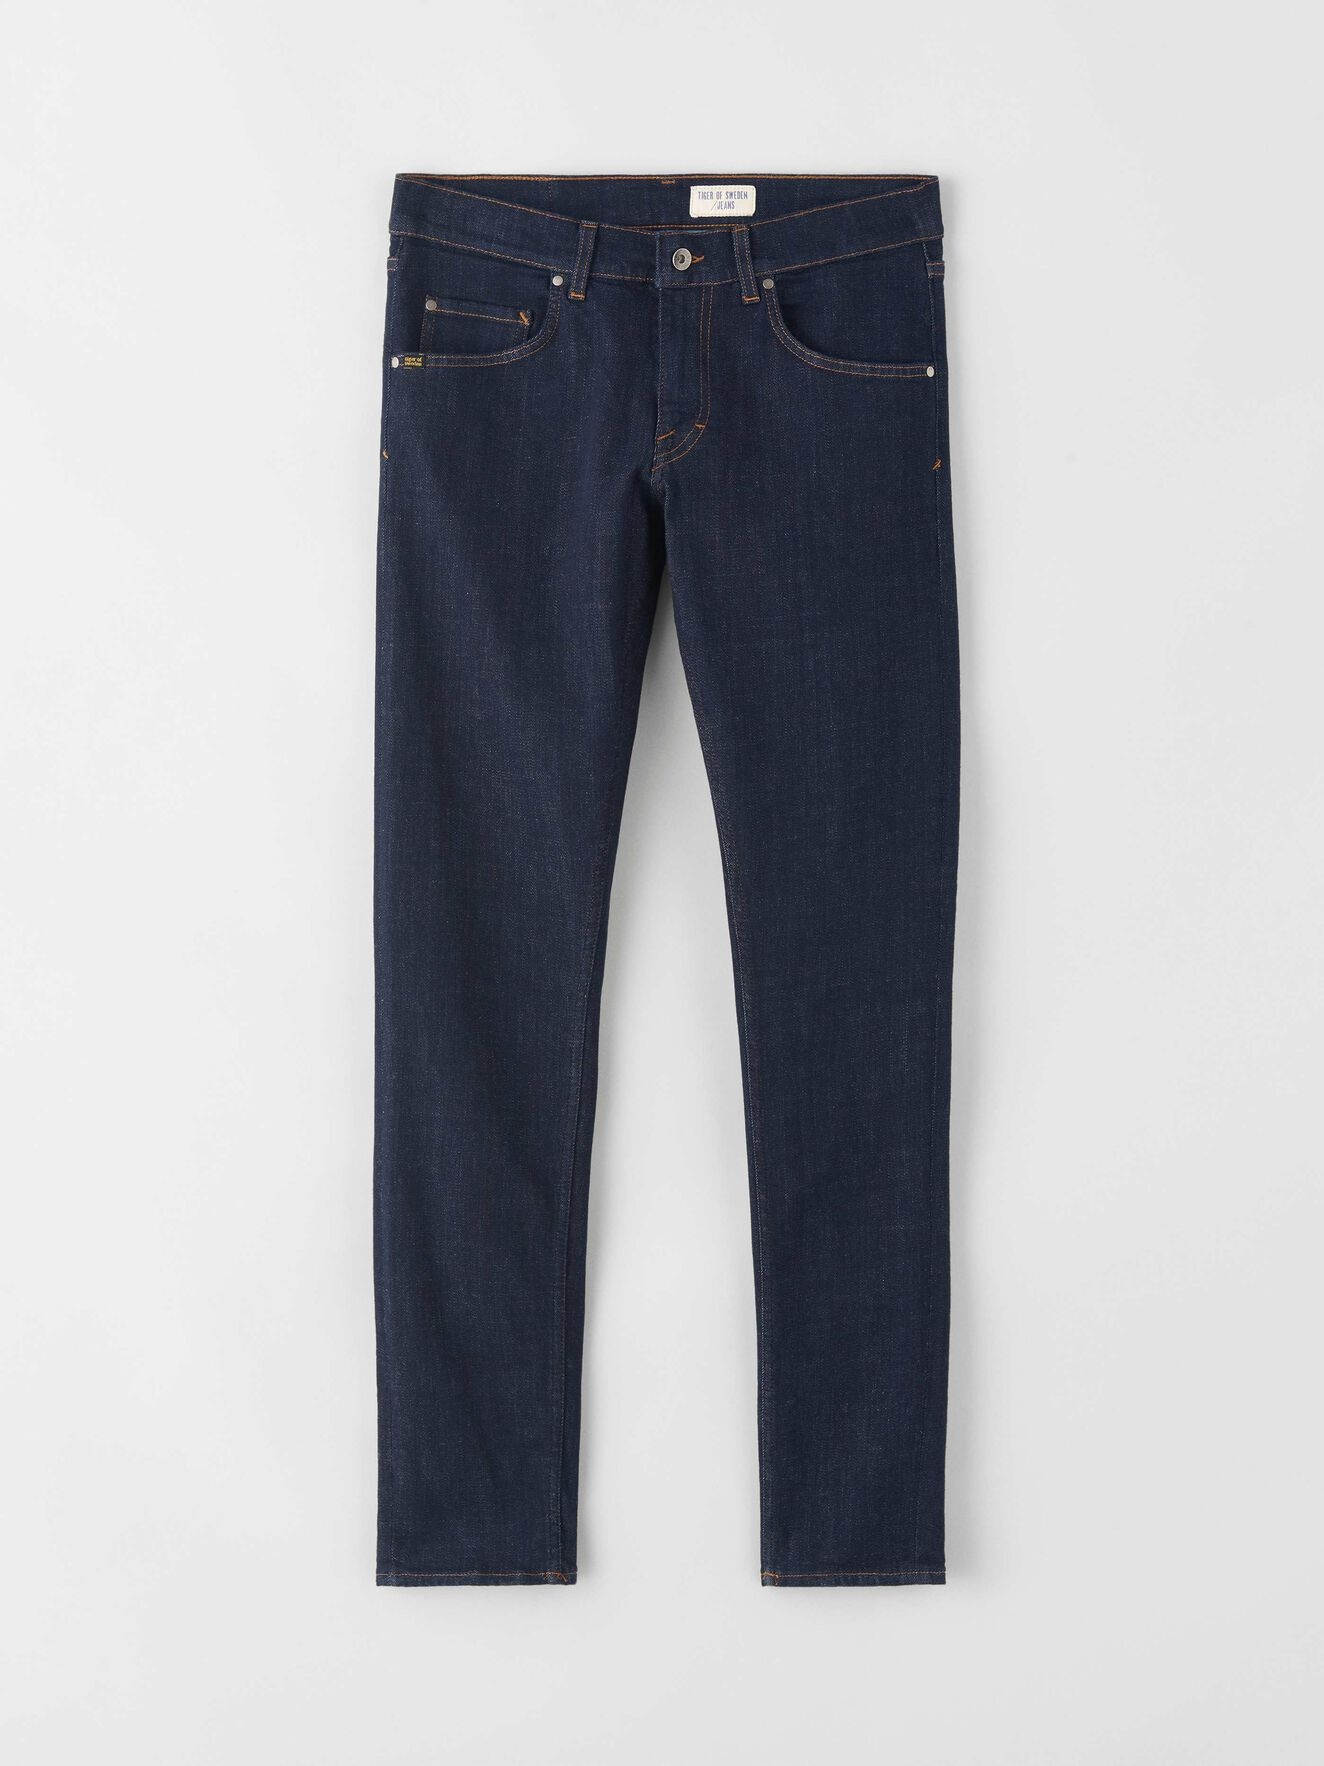 431d114c Jeans - Shop men's jeans online at Tiger of Sweden